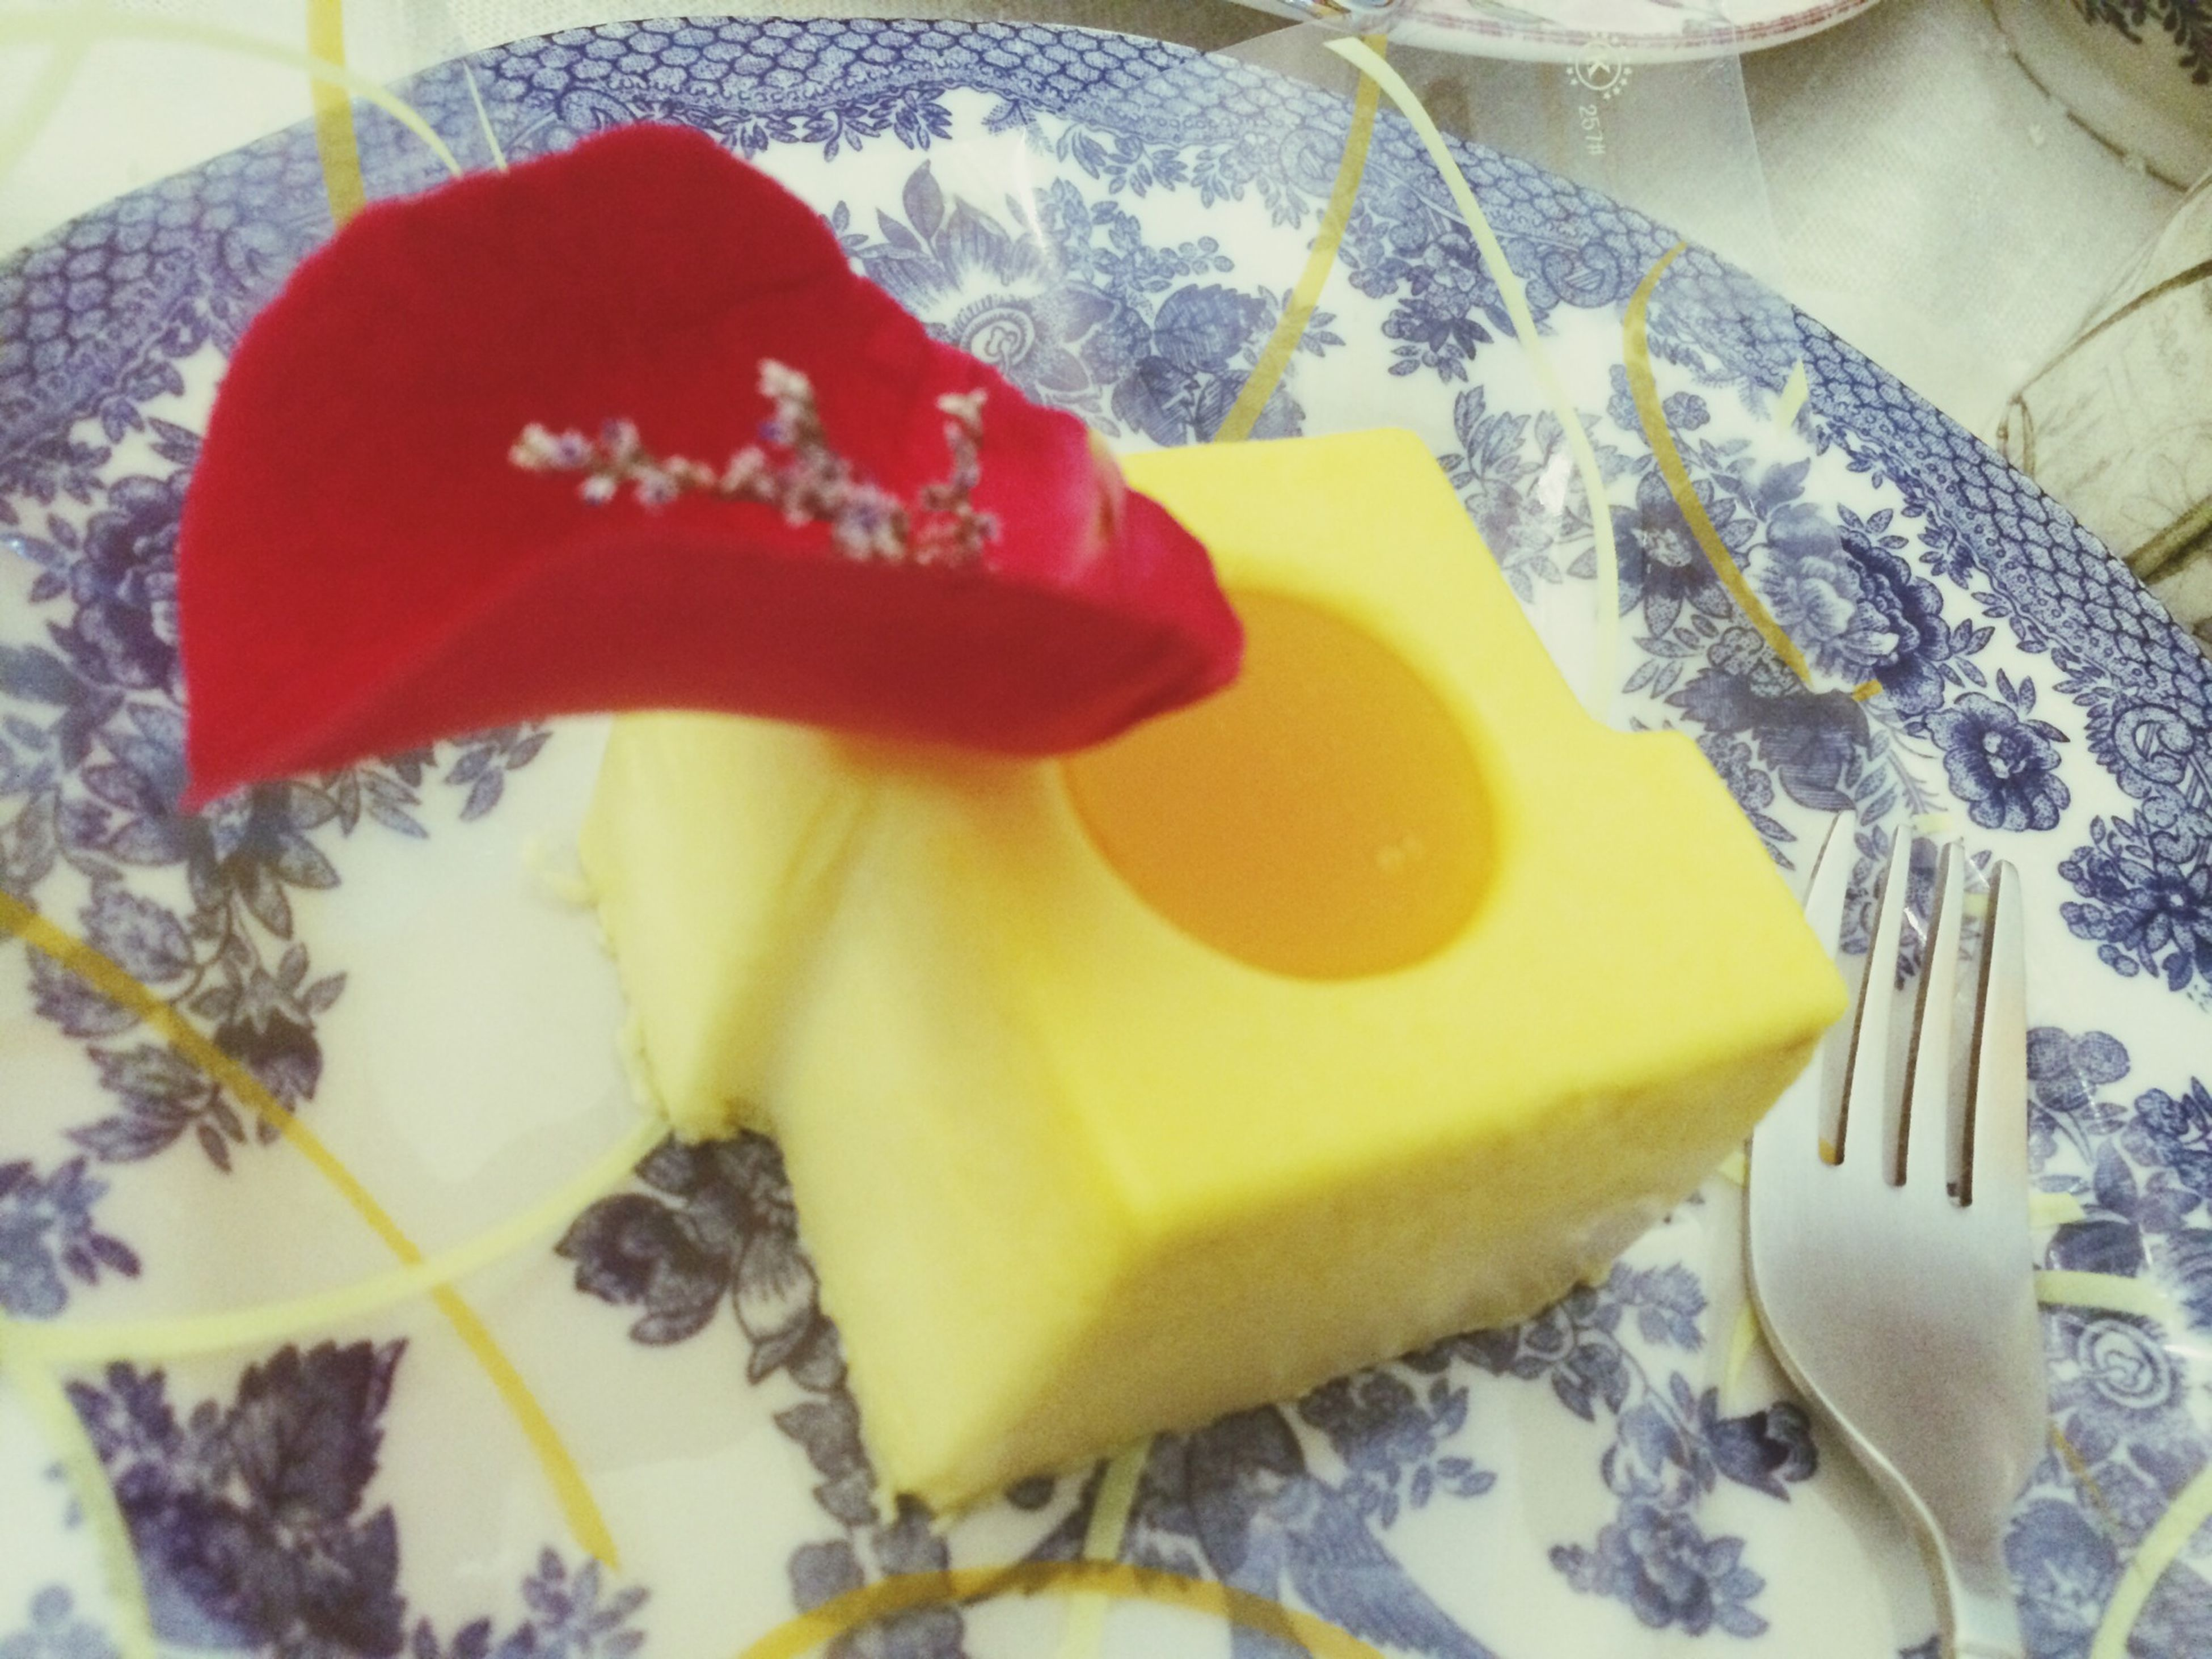 indoors, yellow, close-up, still life, high angle view, red, no people, fabric, multi colored, table, plastic, flower, day, textile, home interior, white color, freshness, creativity, absence, sunlight